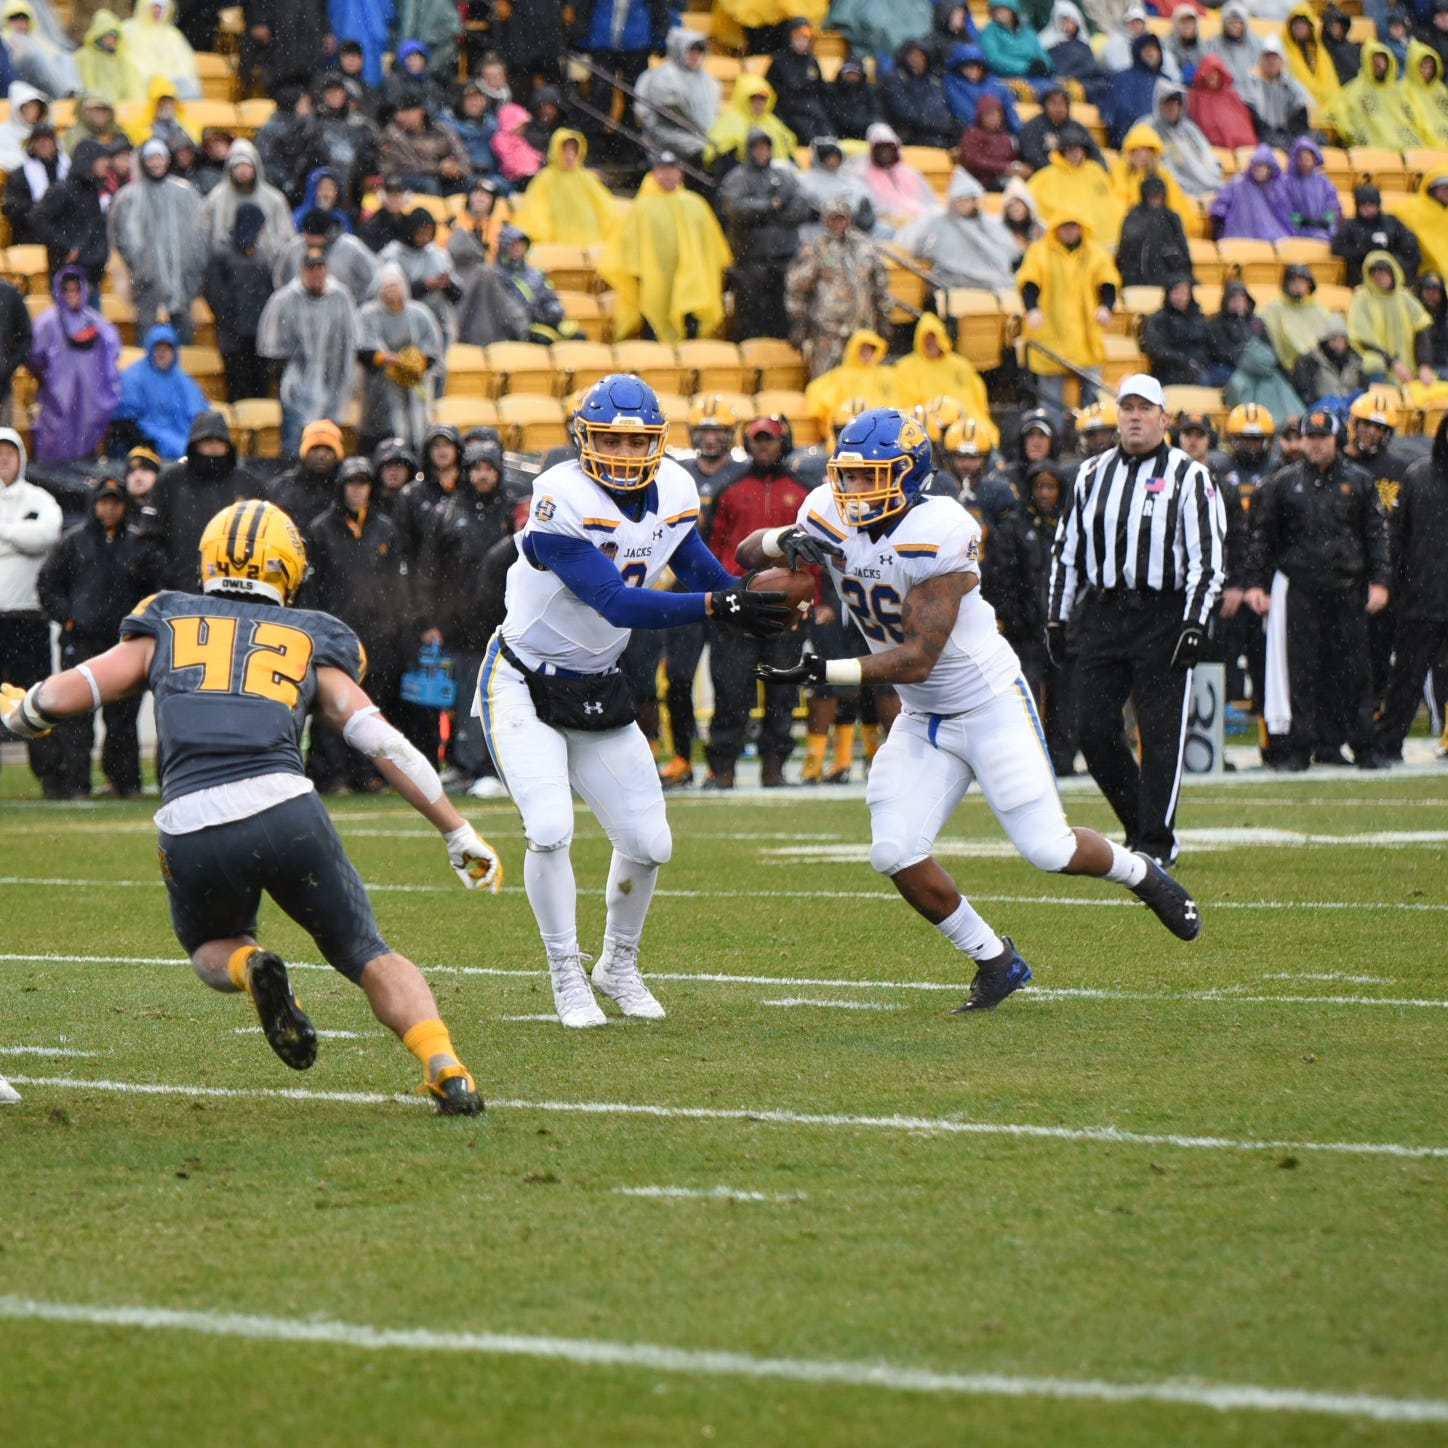 South Dakota State holds off Kennesaw State to advance to FCS semifinals